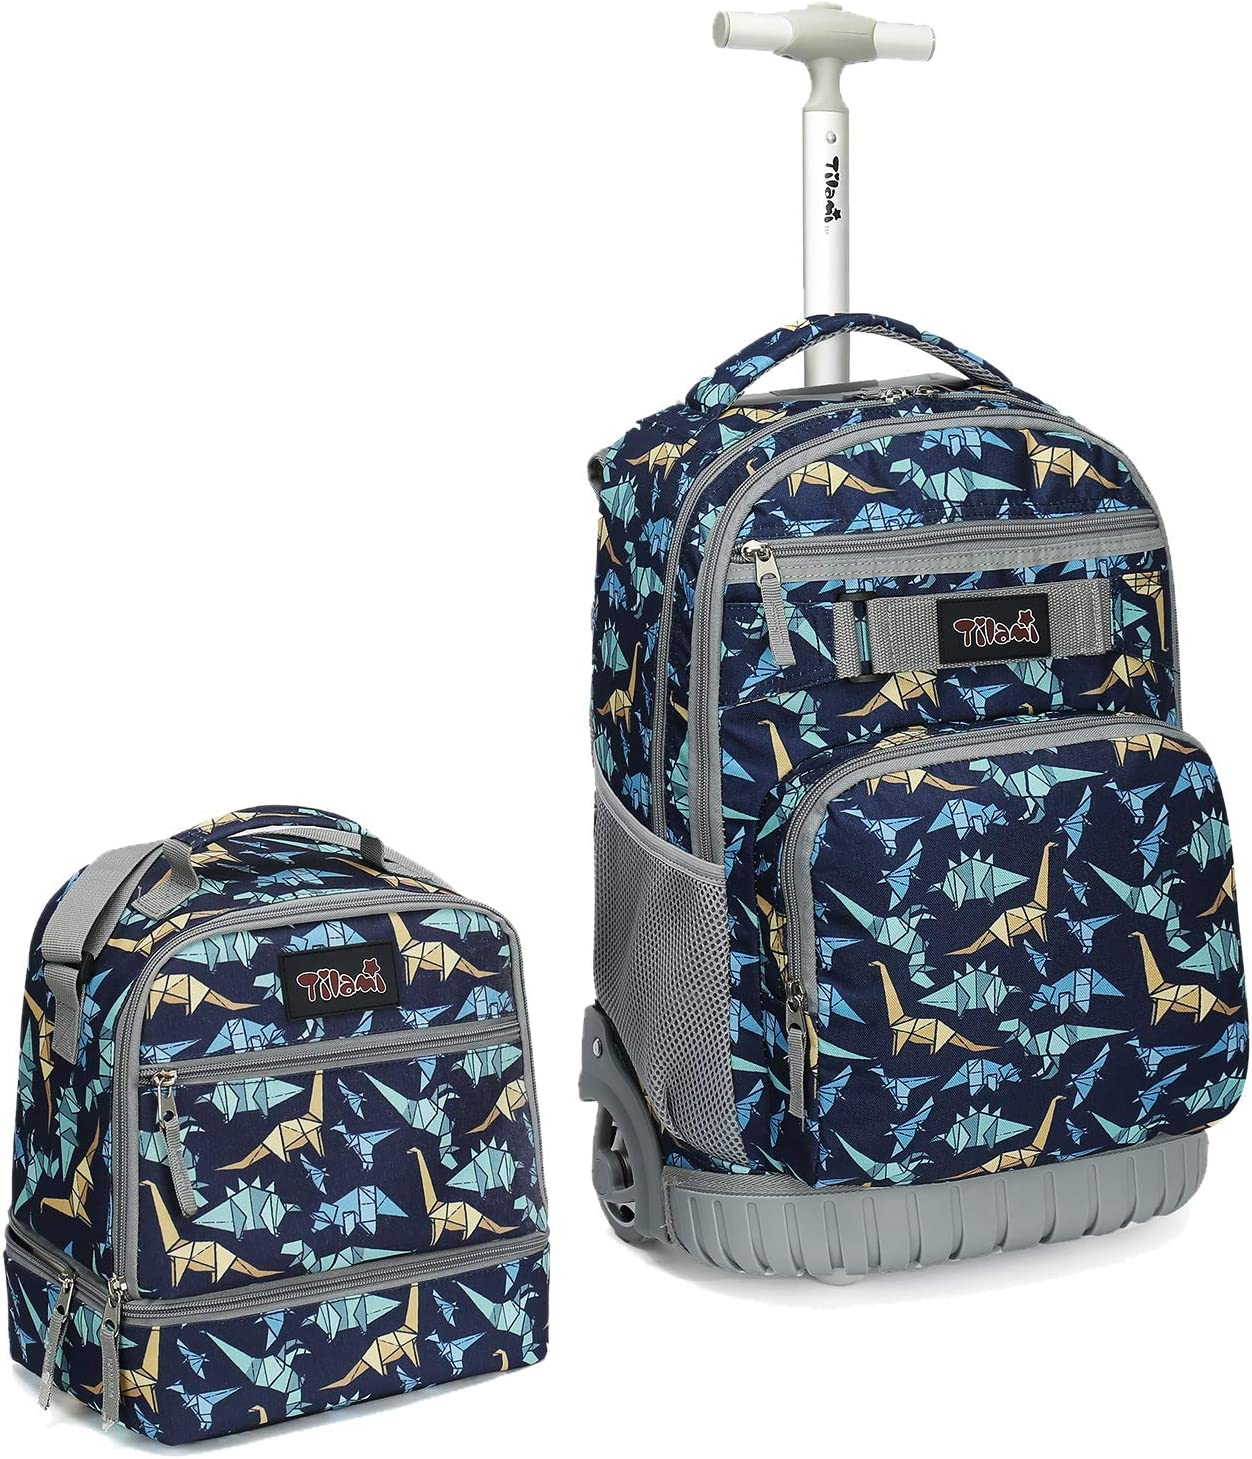 Tilami Rolling Backpack 19 inch with Lunch Bag Wheeled Laptop Backpack, Dinosaur